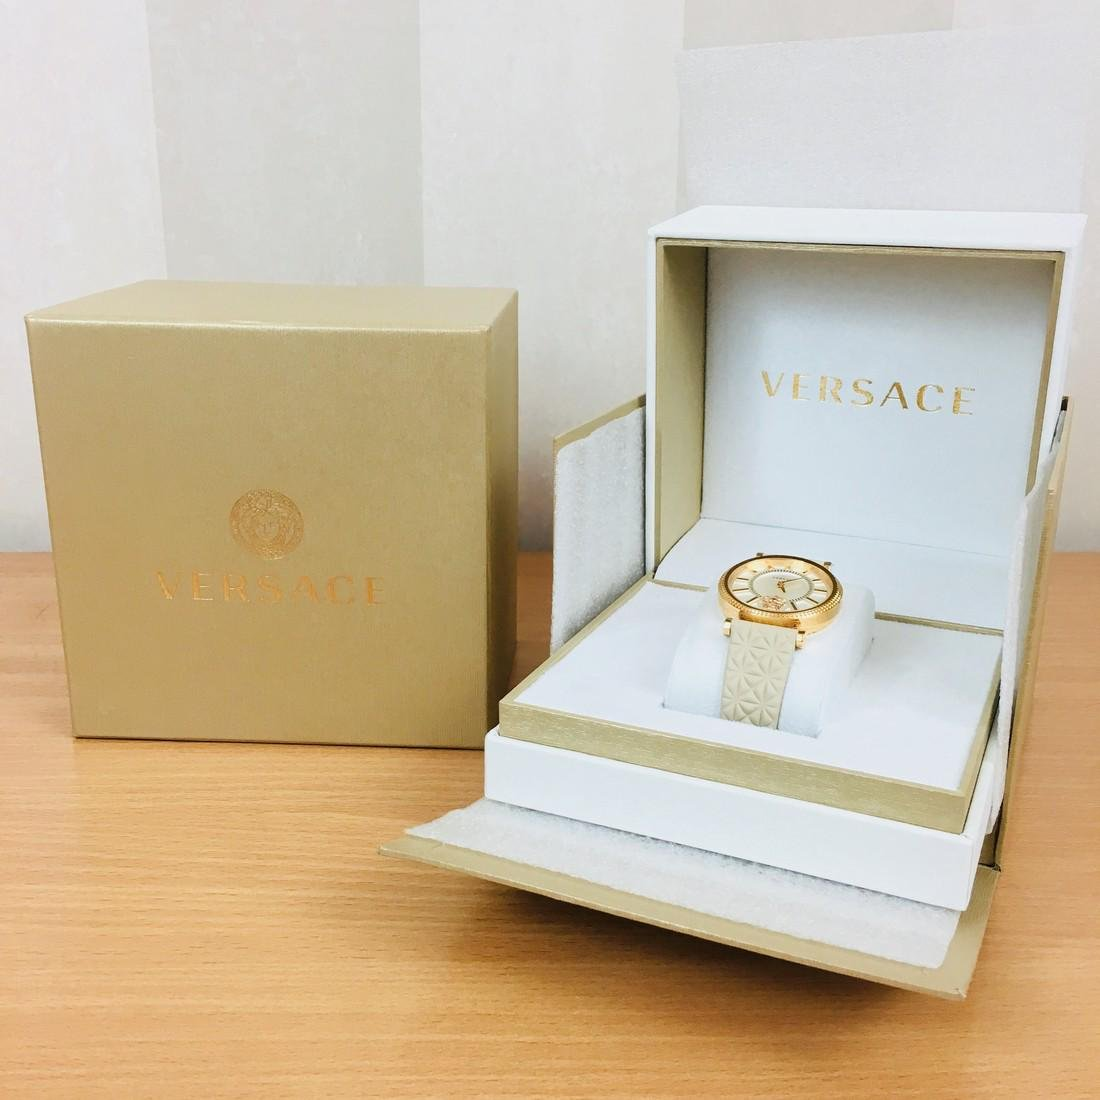 VERSACE V-HELIX Swiss Made Ladies Luxury Watch - 10